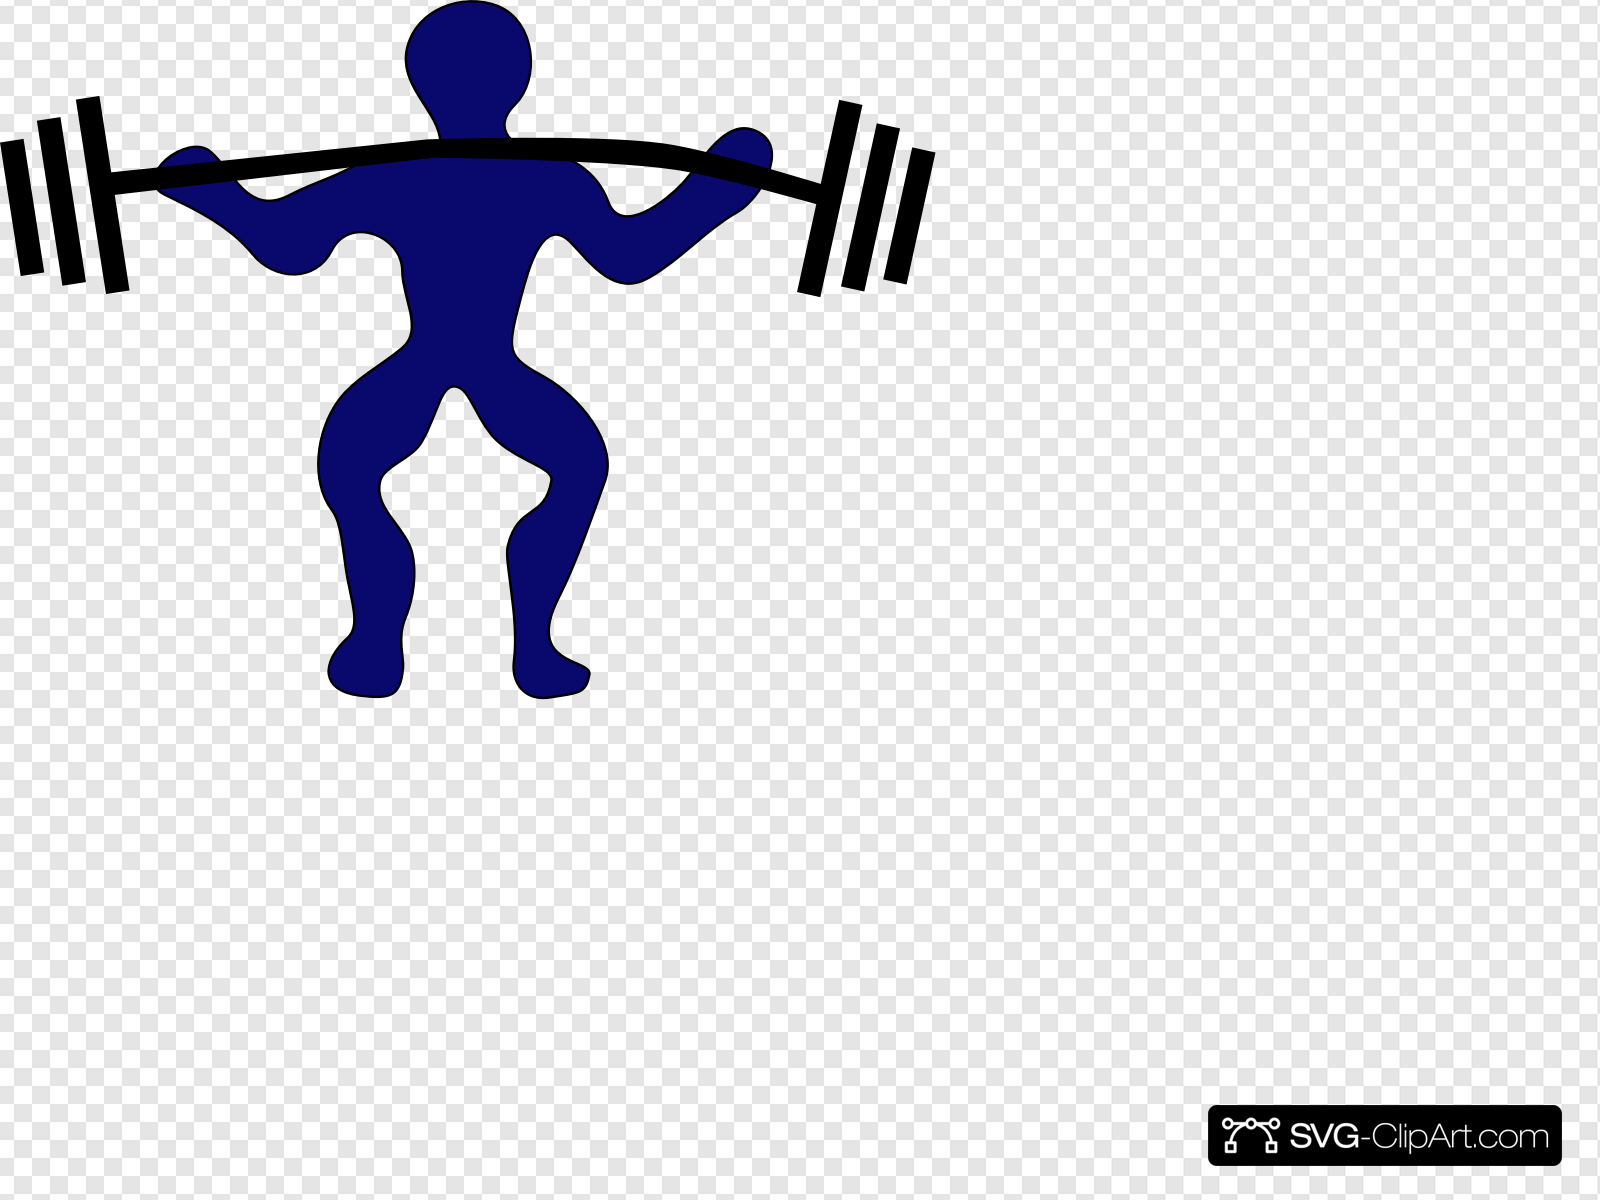 Blue Man Weightlifting Clip art, Icon and SVG.